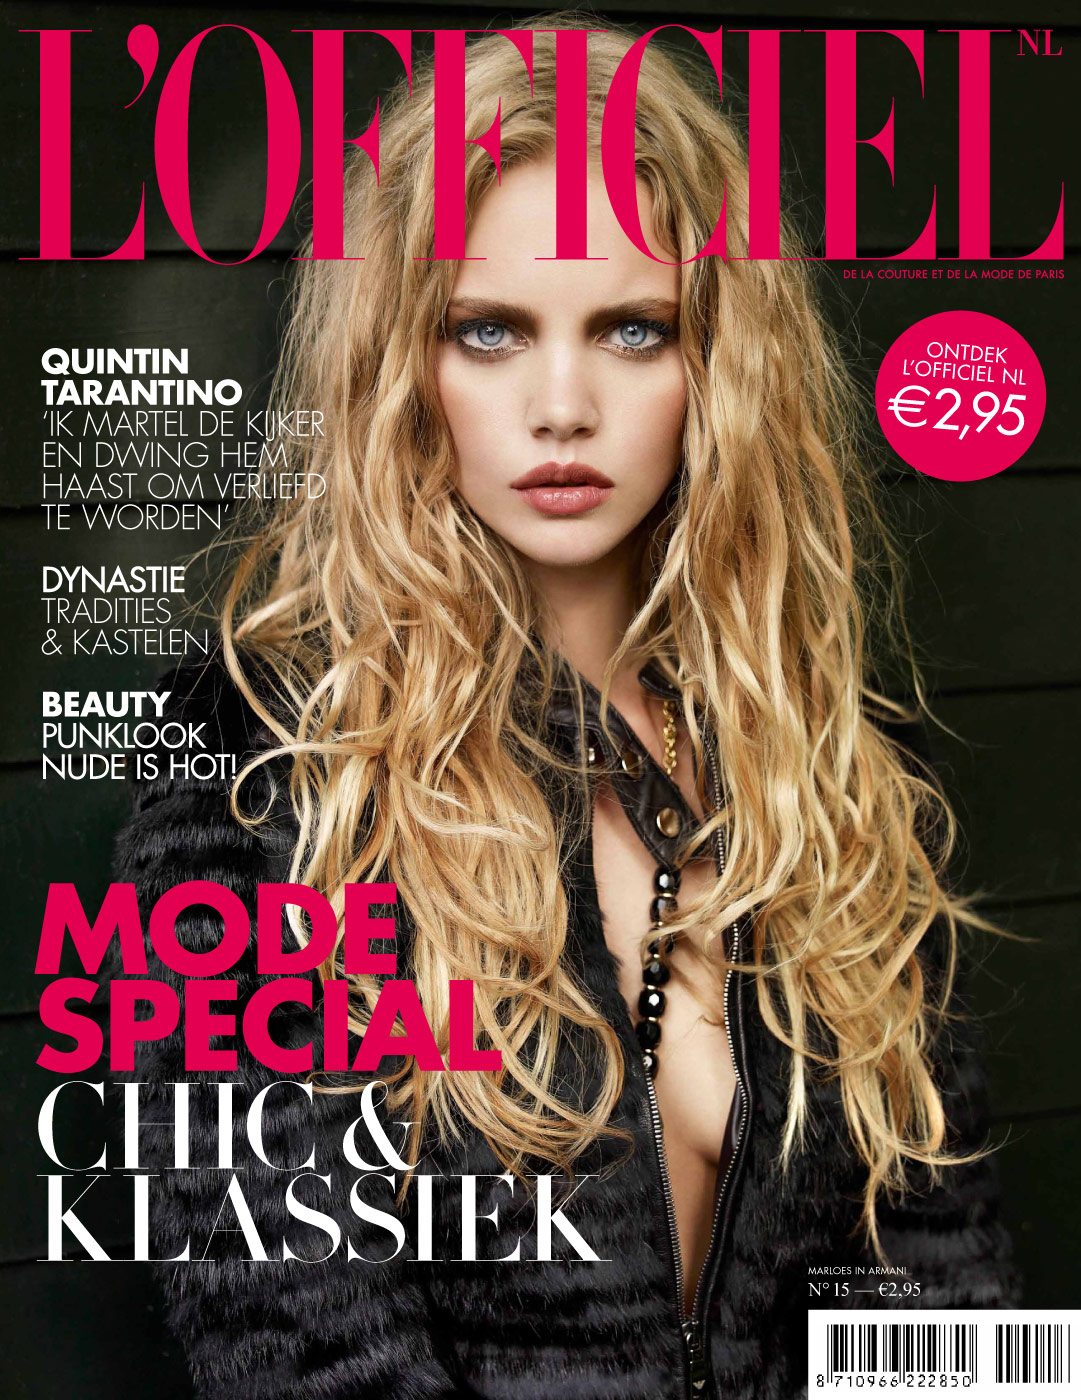 L'Officiel NL, design, arte direction, fashion magazine